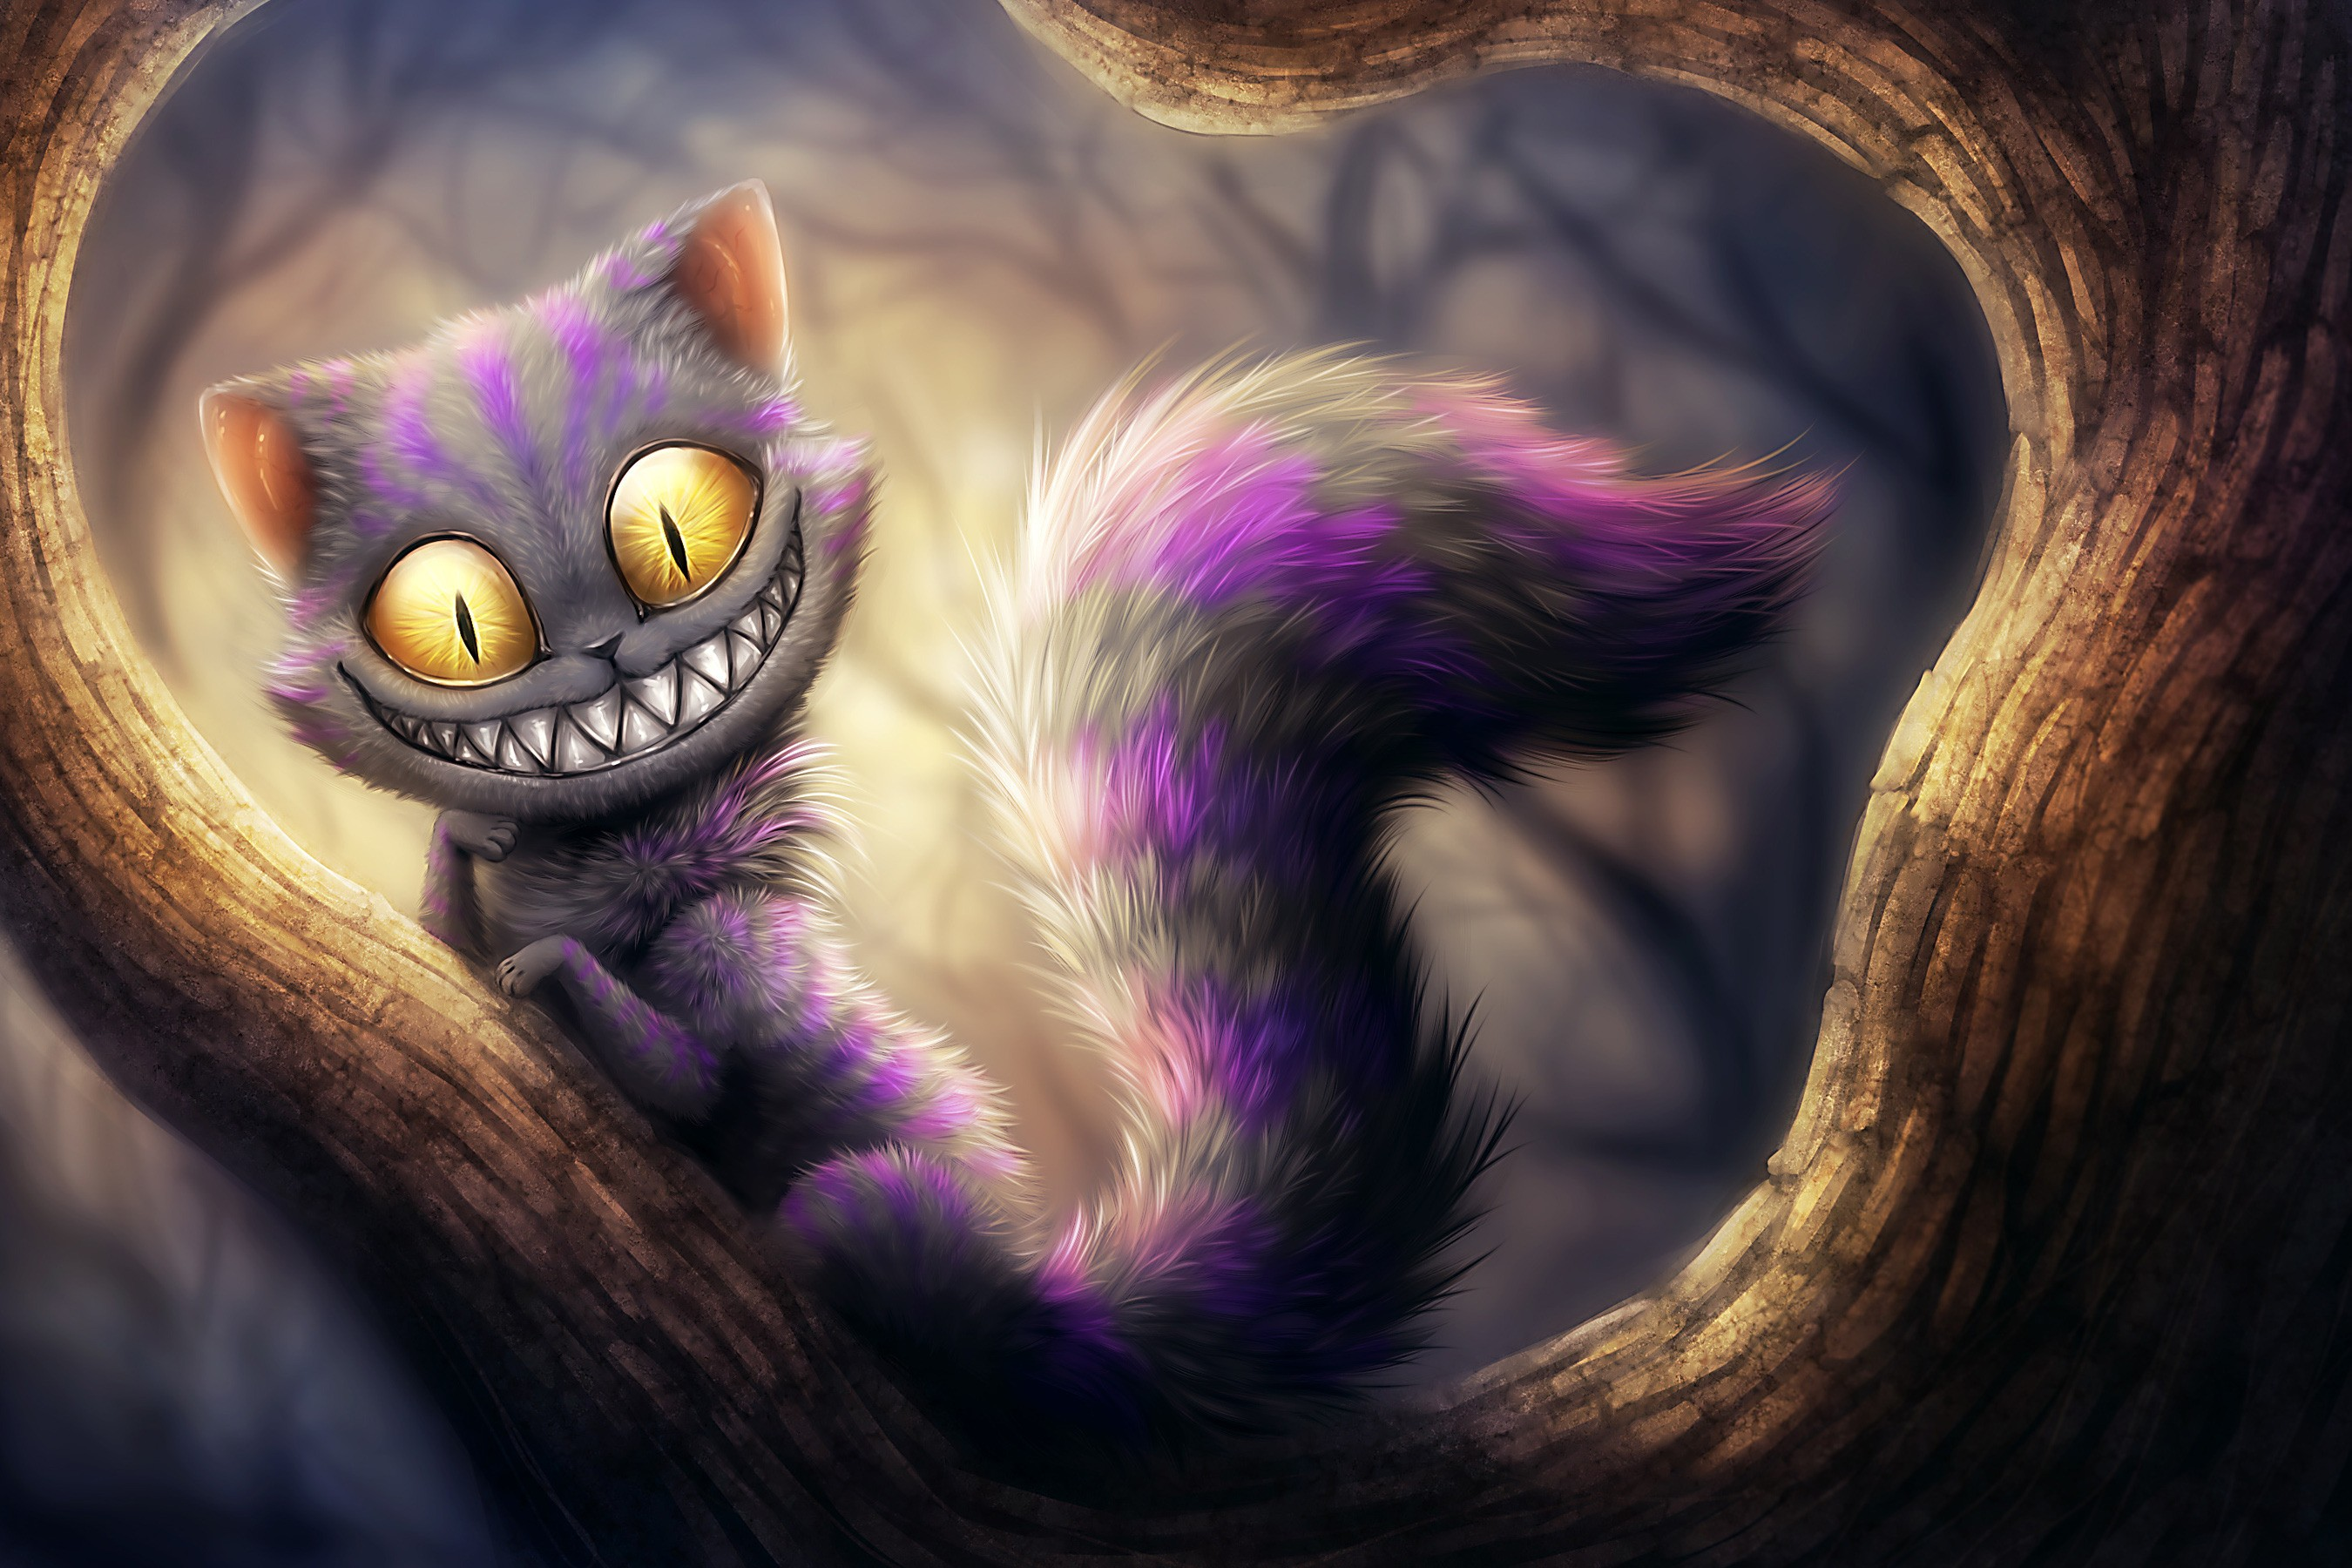 Cats Anime Wallpaper 2700x1800 Cats Anime Cheshire Cat 2700x1800